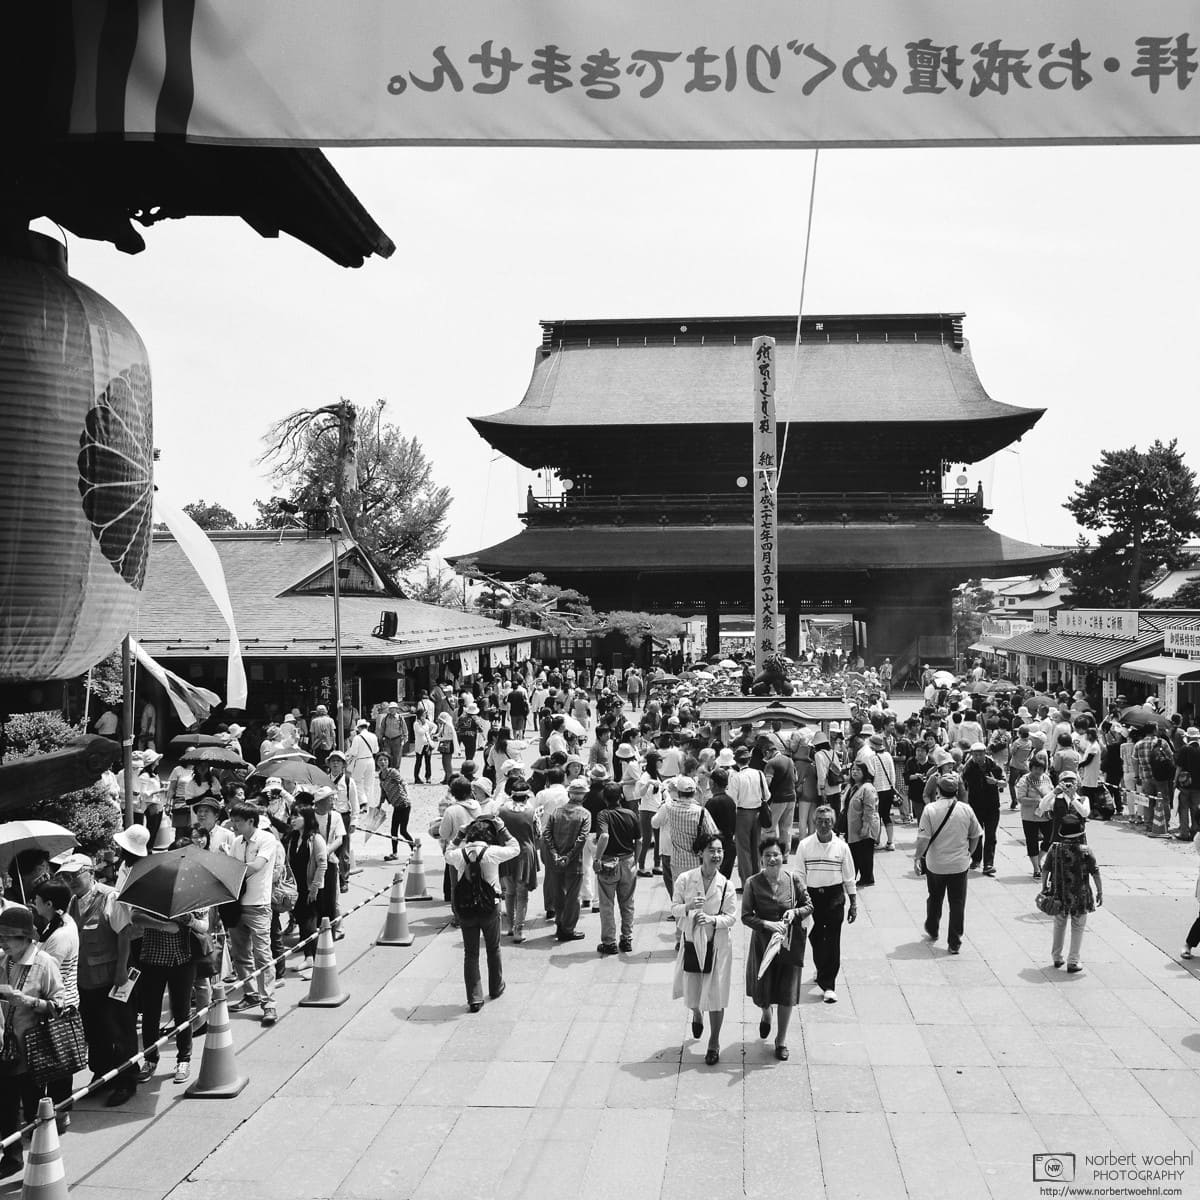 Gokaicho is an event held every 6 years at Zenkoji Temple in Nagano, Japan. Visitors can view a copy of the first Buddhist statue ever to be brought into Japan.